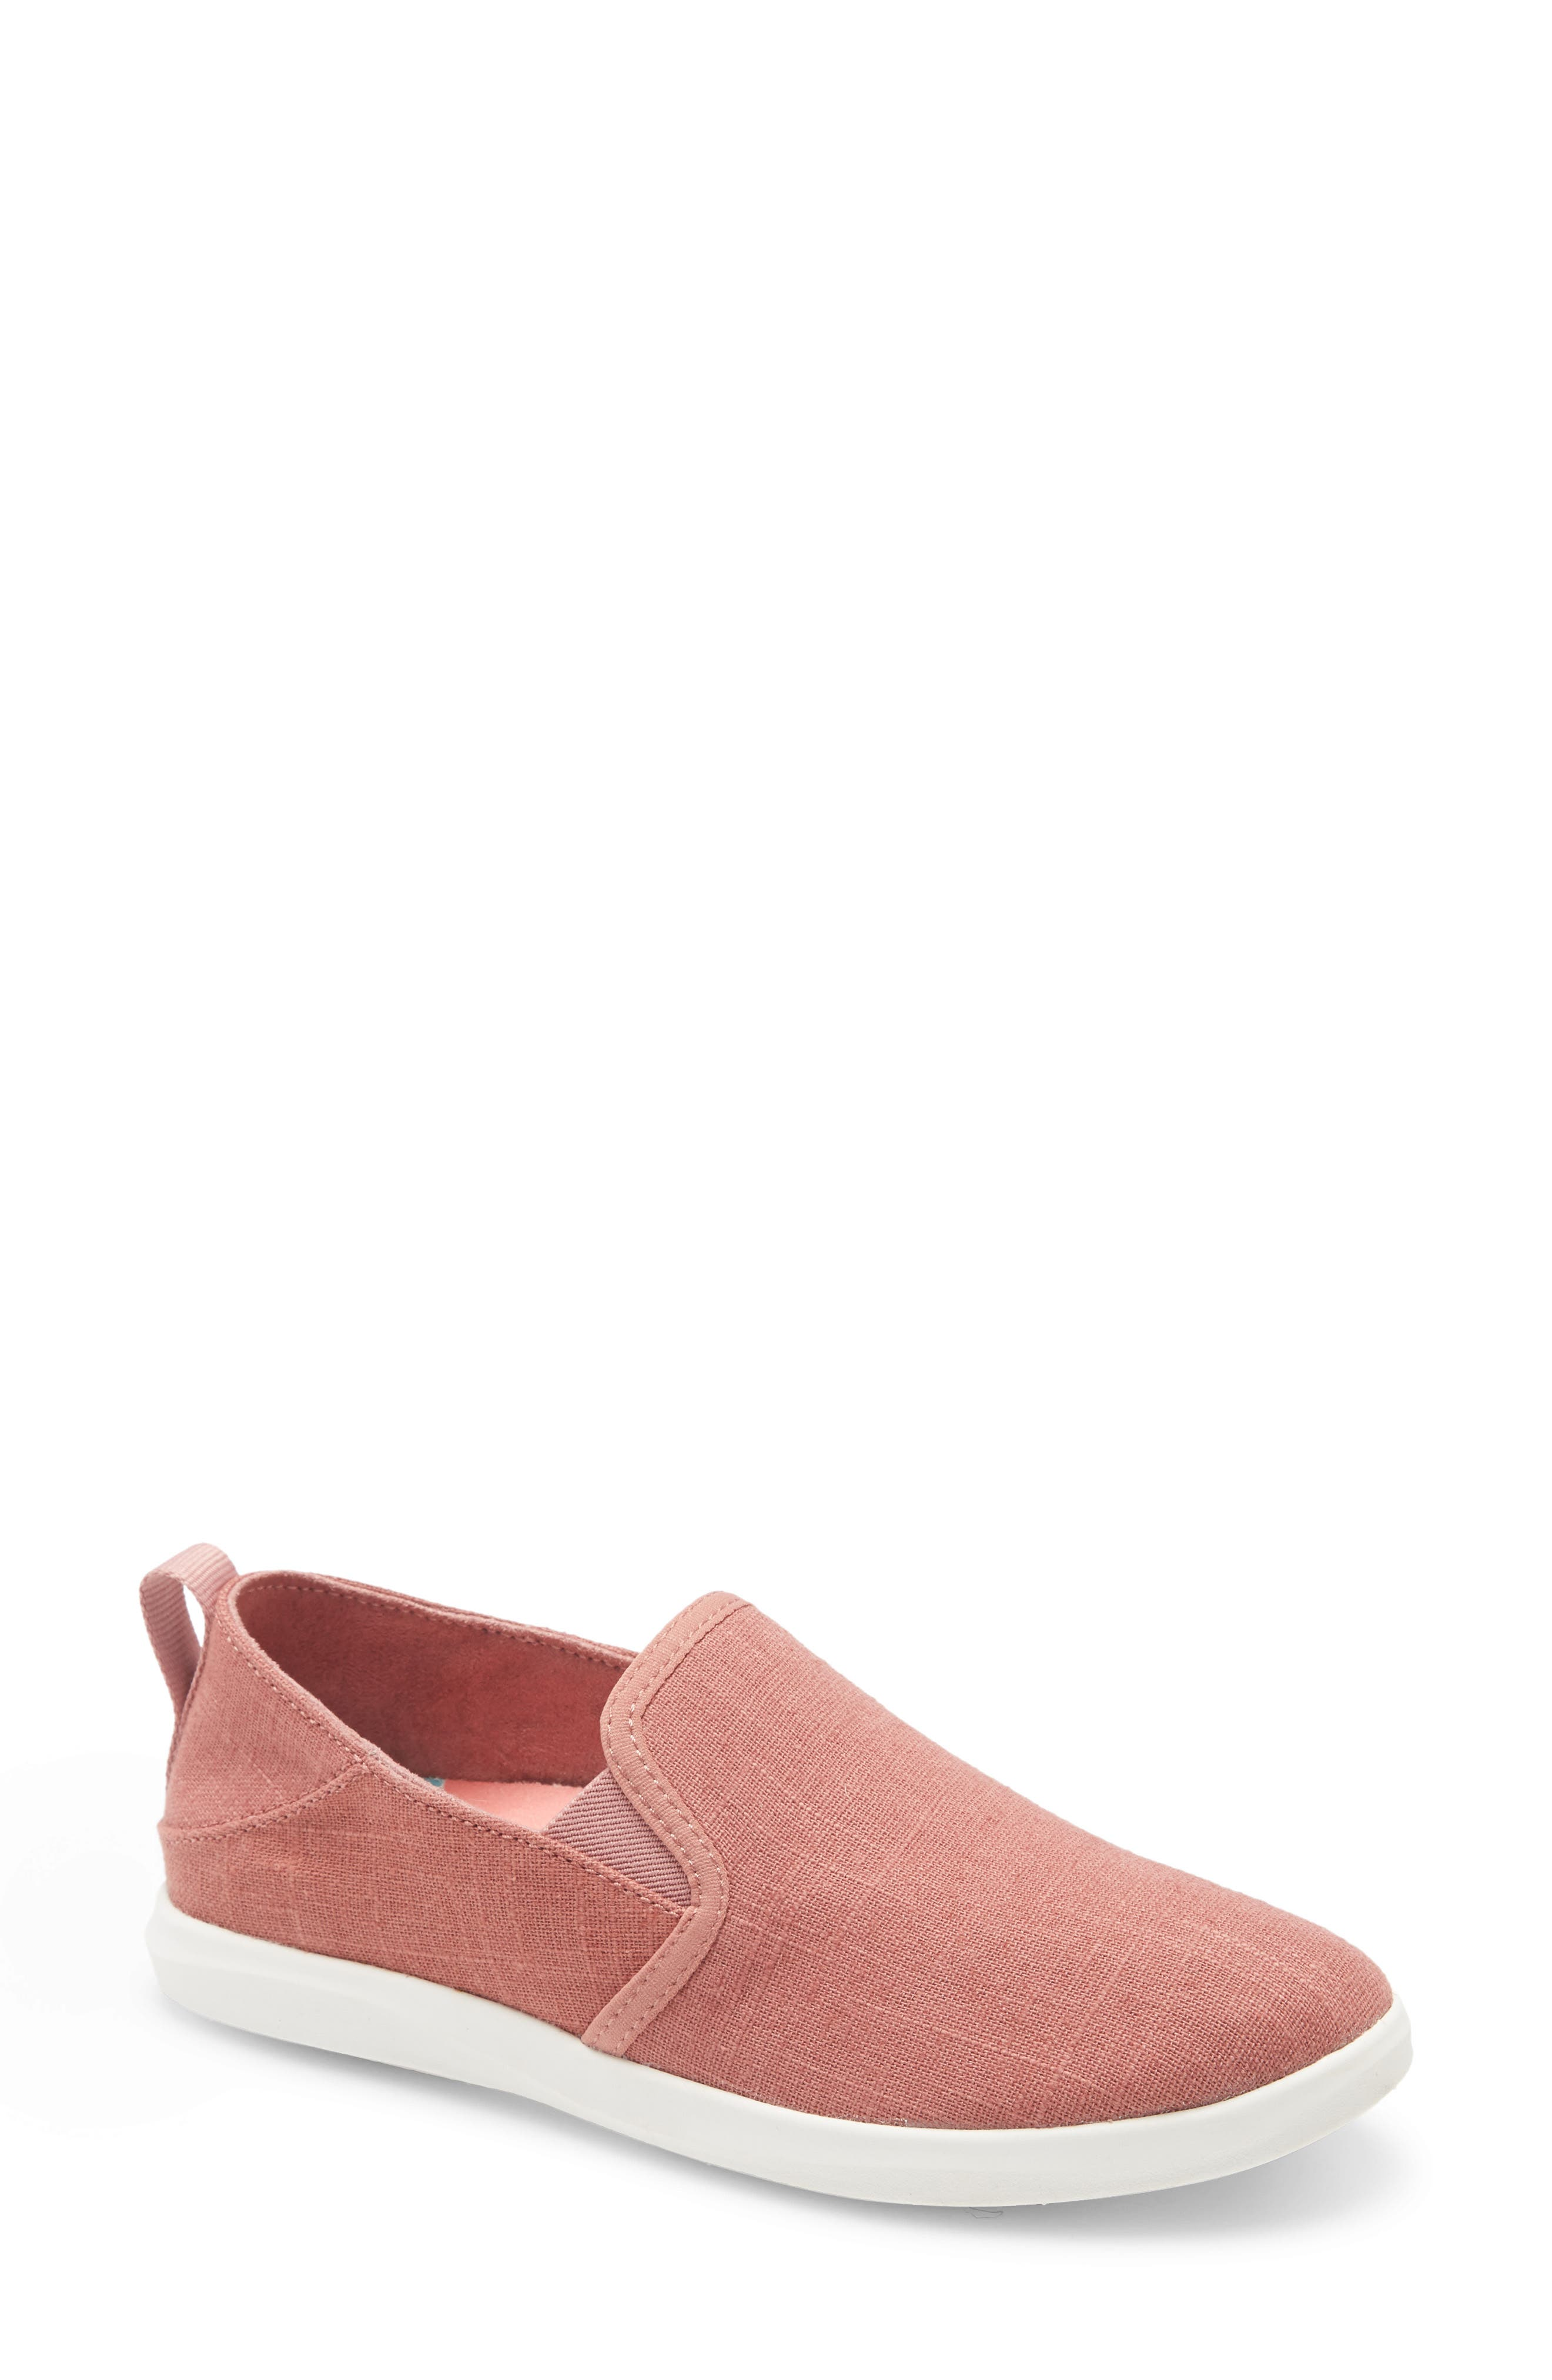 A sneaker you\\\'ll want to live in features a woven upper with a Drop-in-Heel and elastic gores for slipping on and off with ease. An anatomical footbed with a gel insert provides all-day cushioning, while the wet-grip sole gives you sturdy traction on the beach or street. Style Name: Olukai Haleiwa Olona Sneaker (Women). Style Number: 6024817. Available in stores.